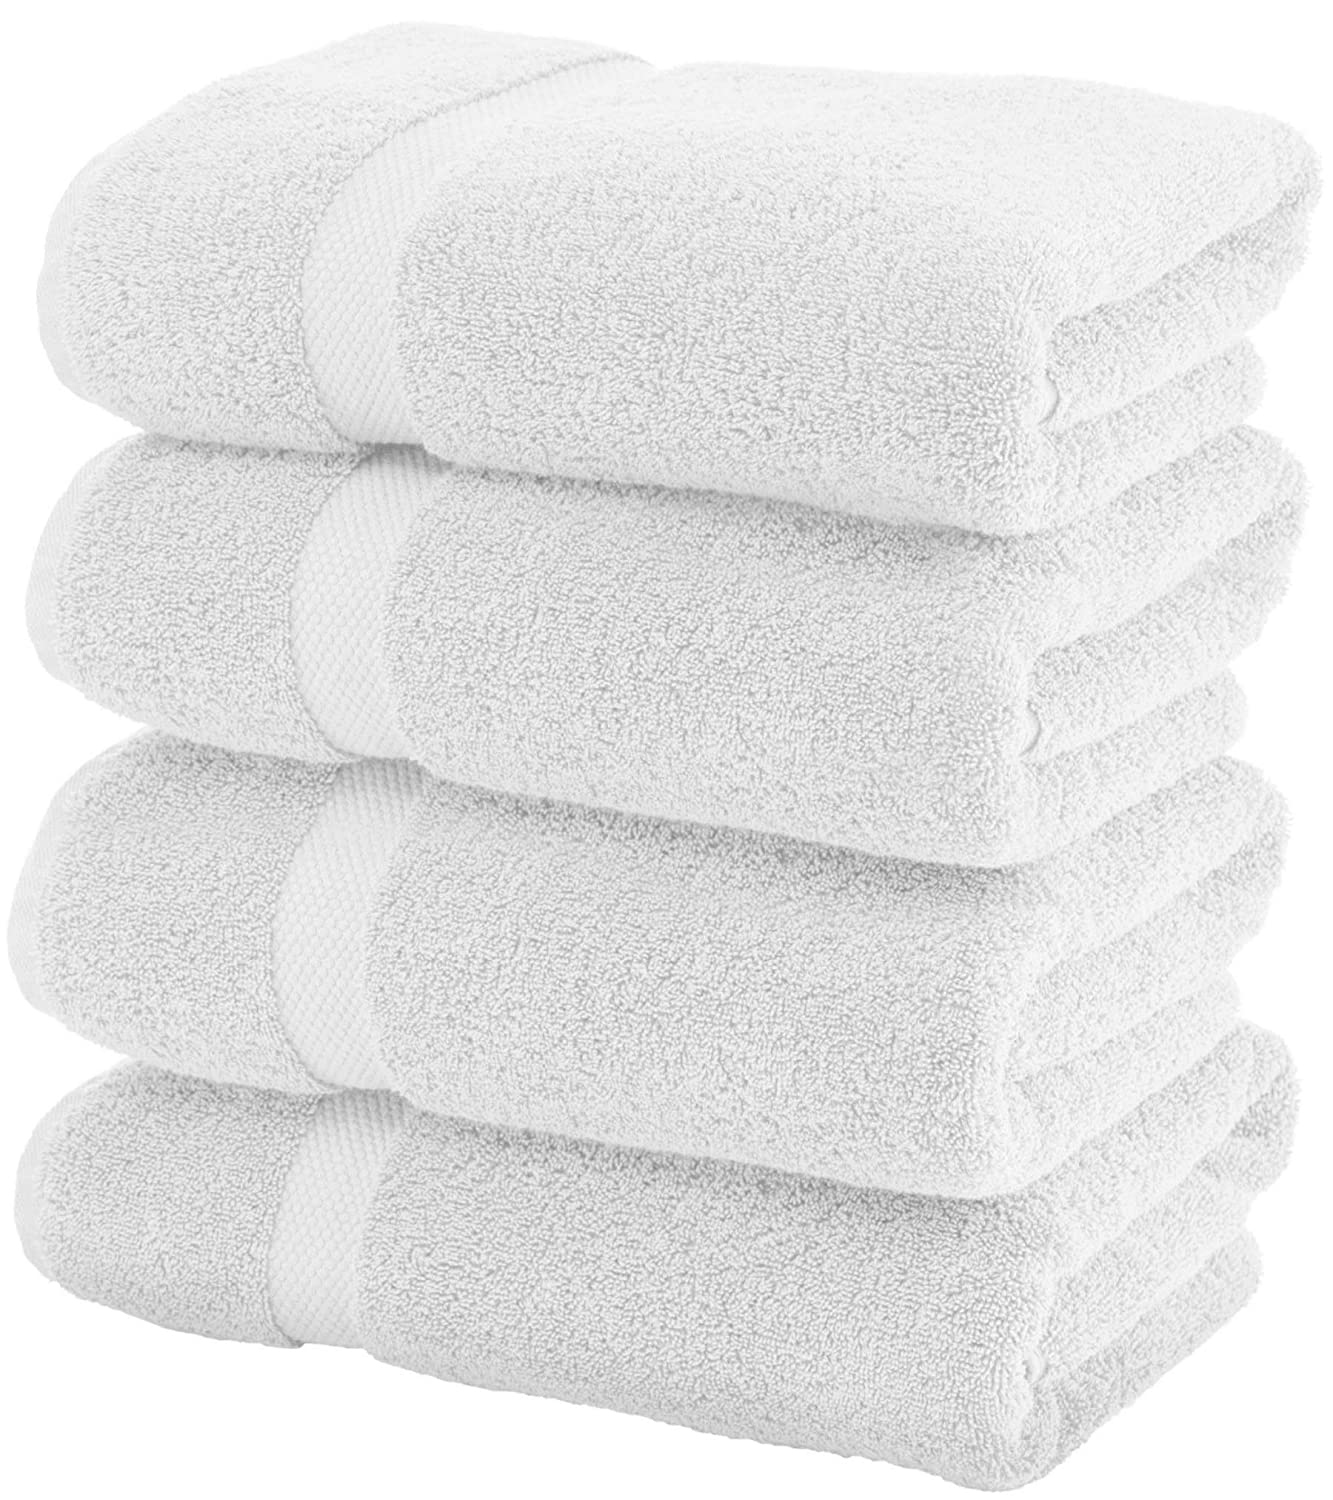 Luxury White Bath Towels by White Classic